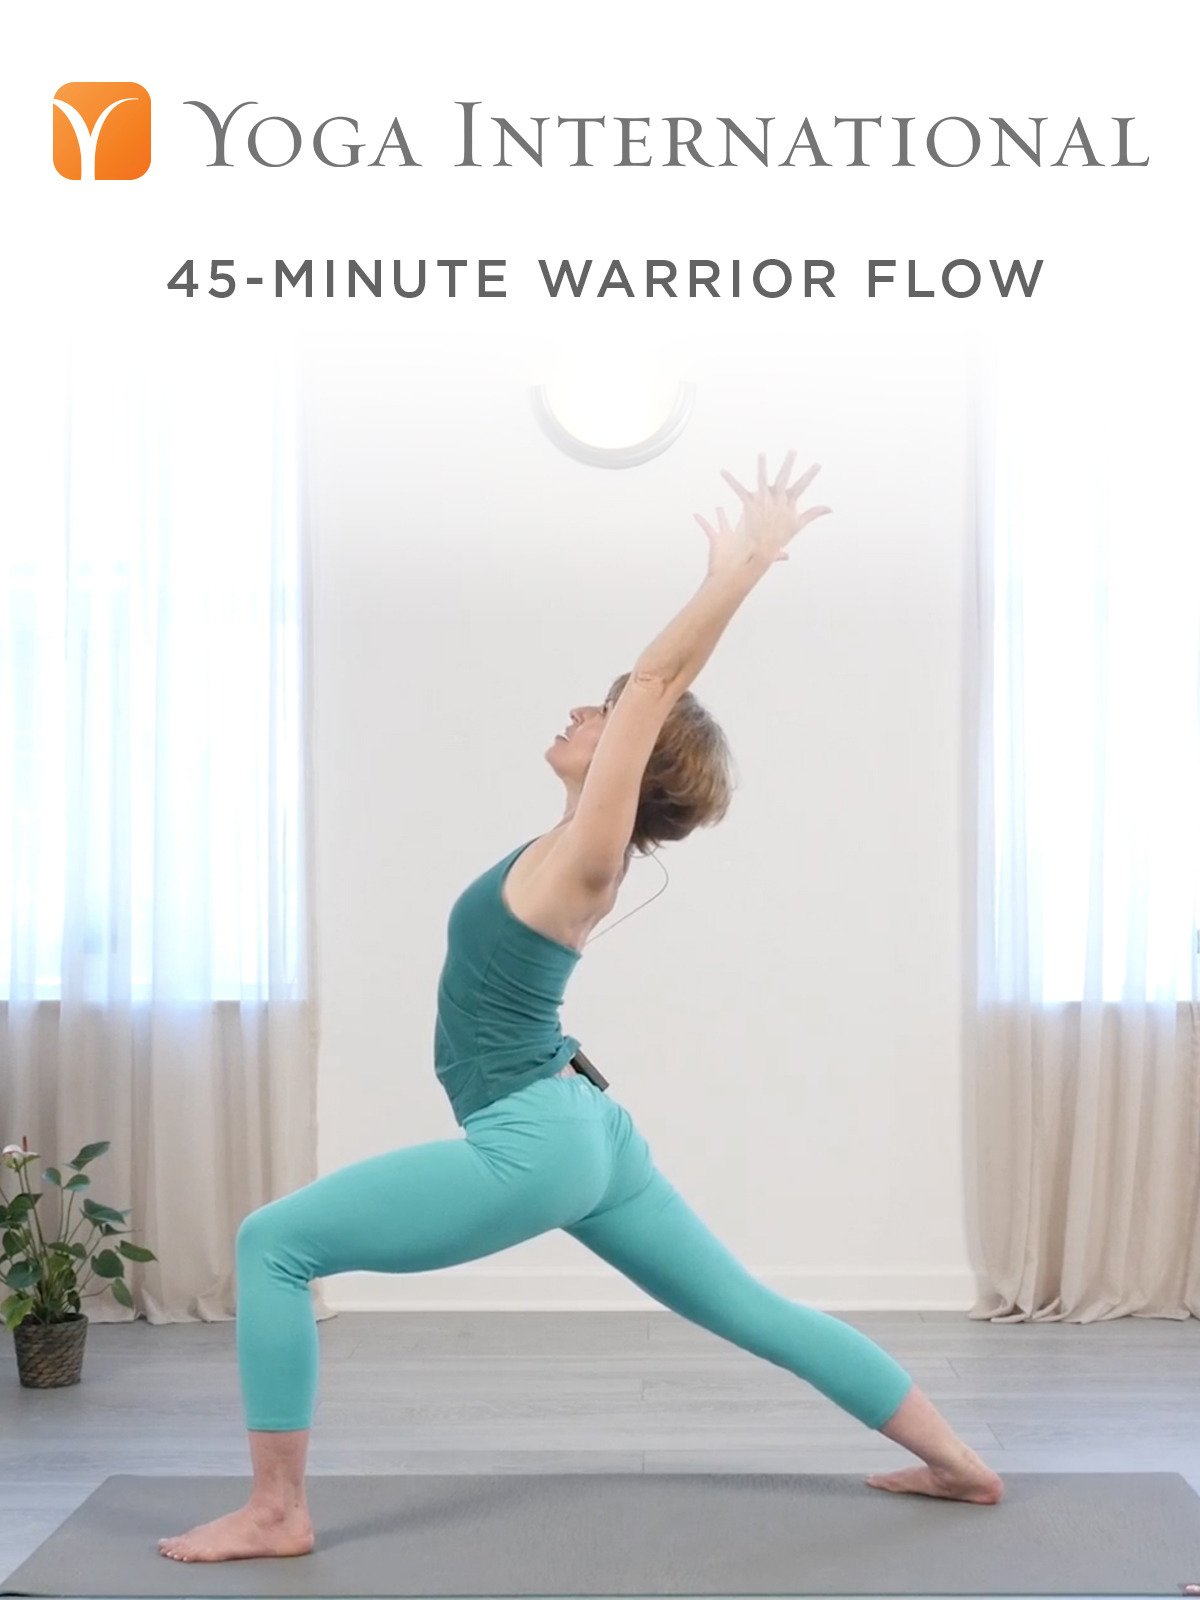 45-Minute Warrior Flow